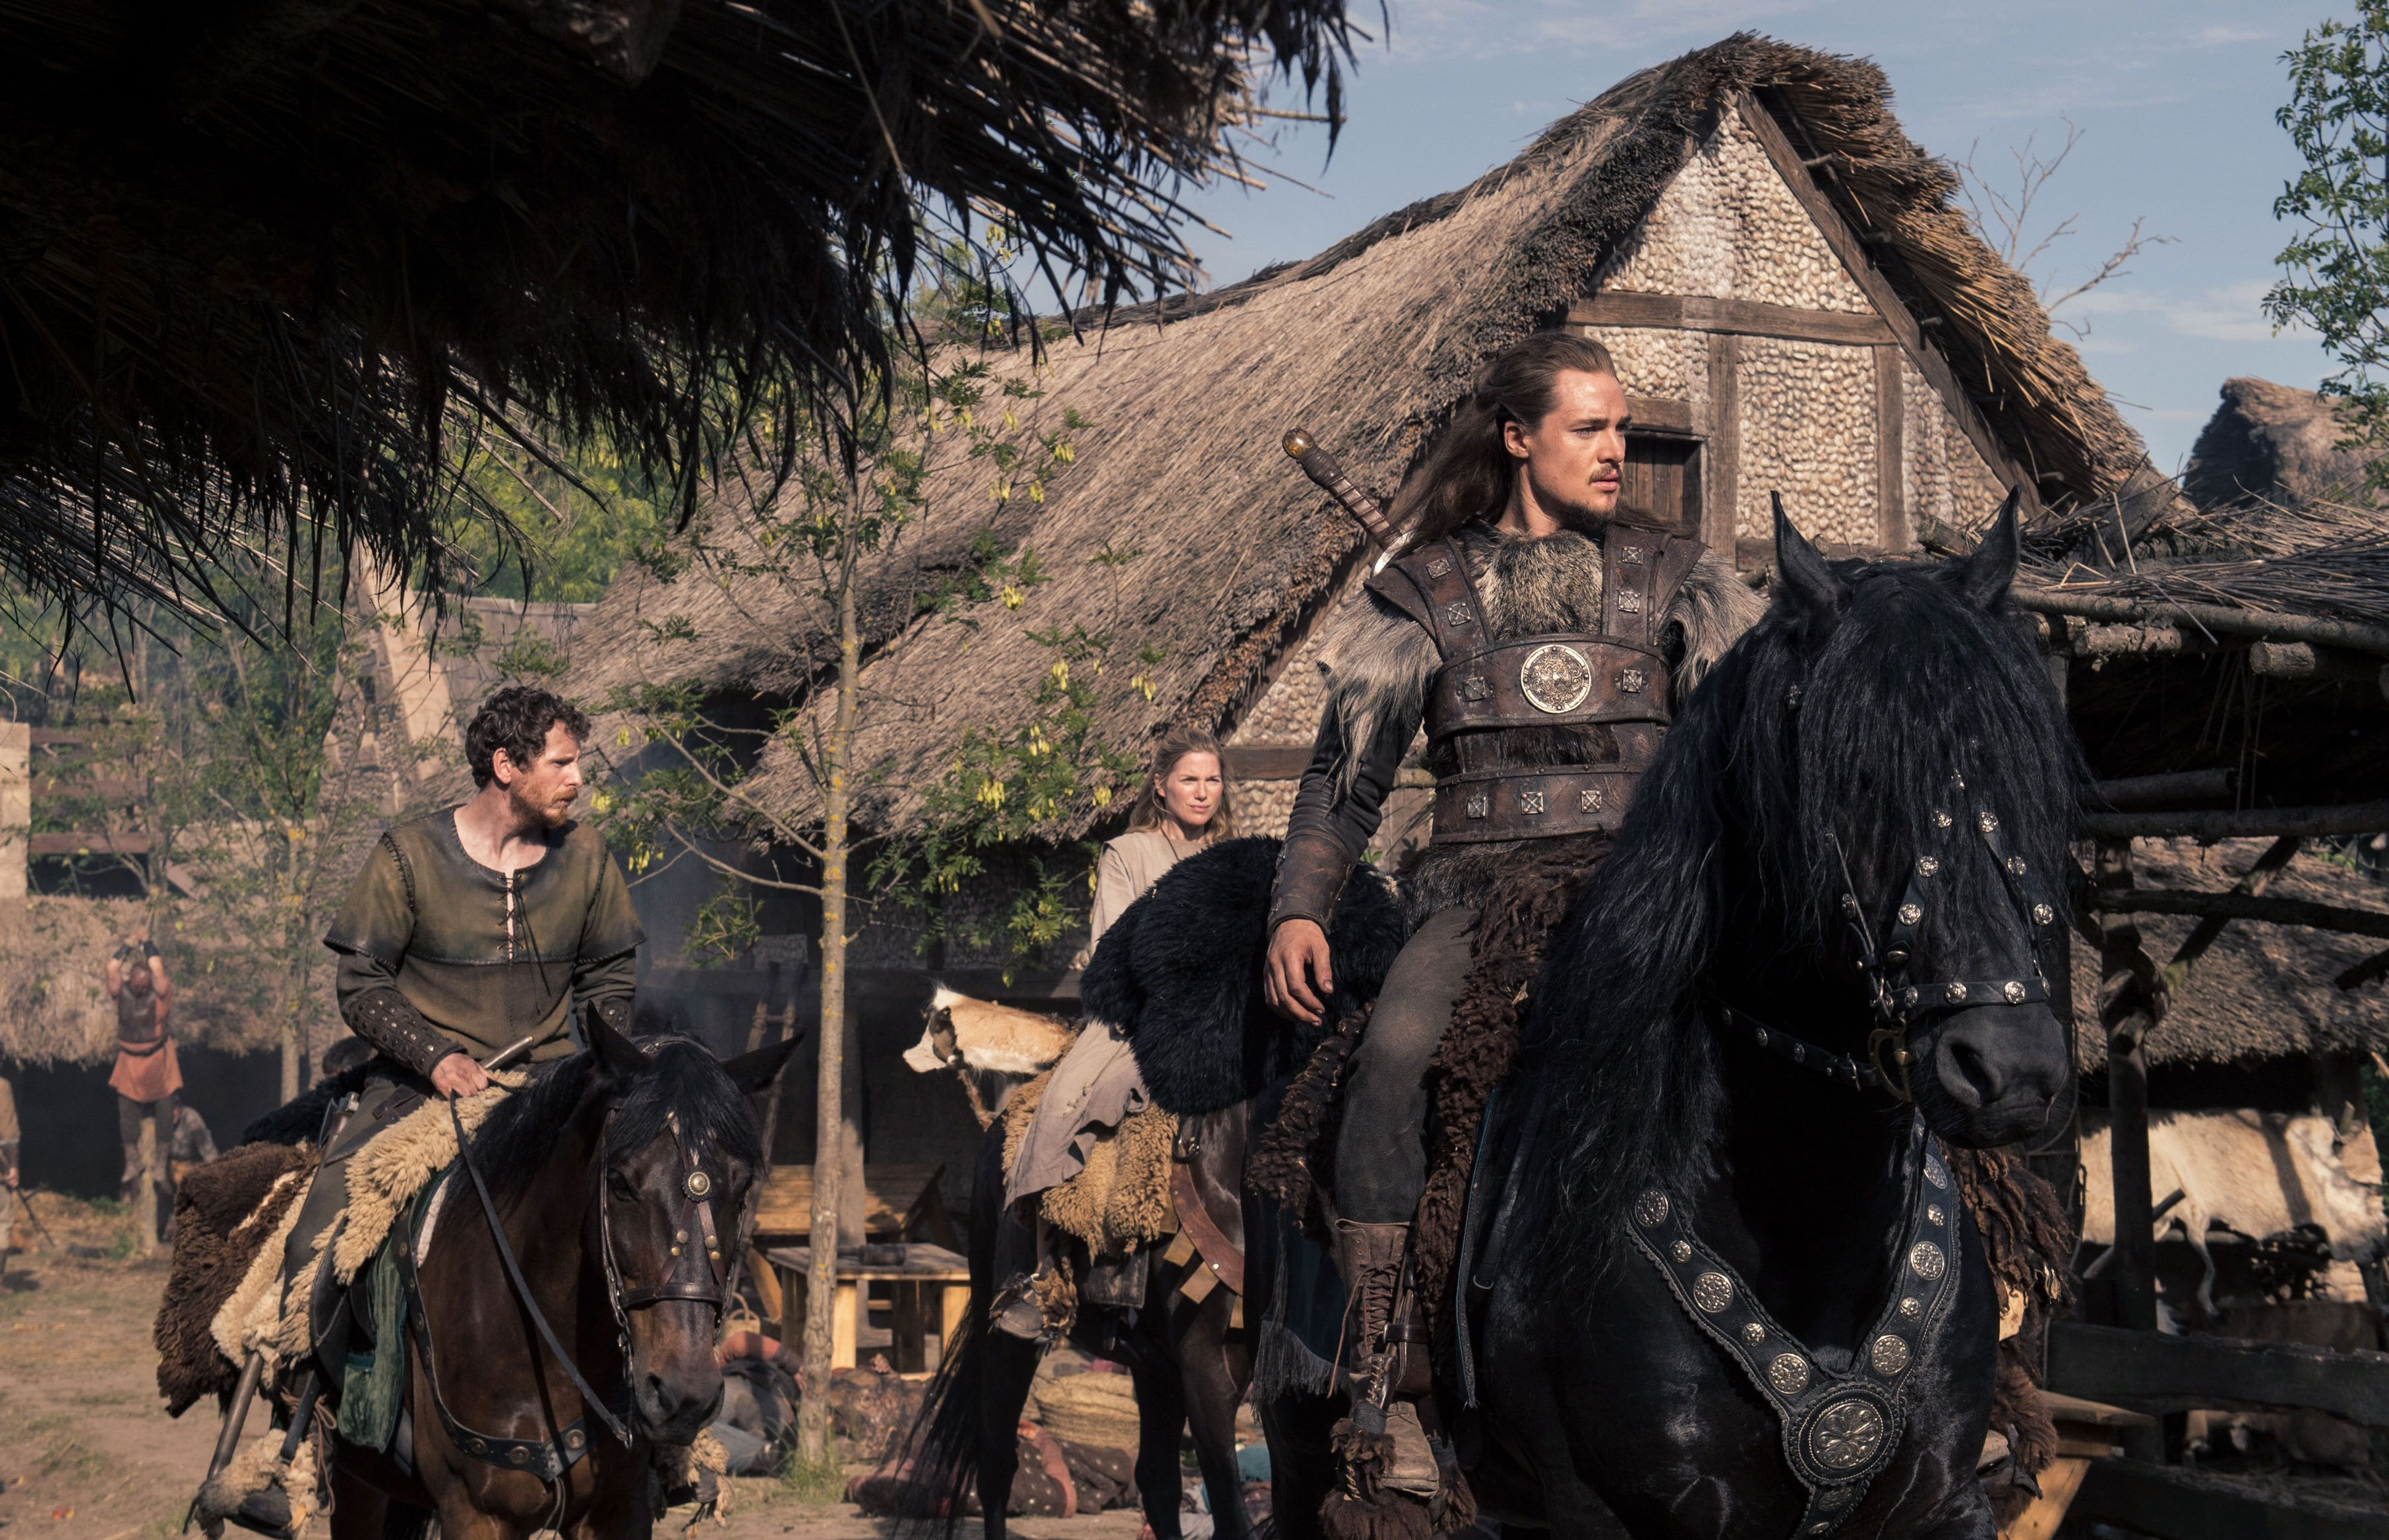 The Last Kingdom on Netflix: Cancelled or Season 3? (Release